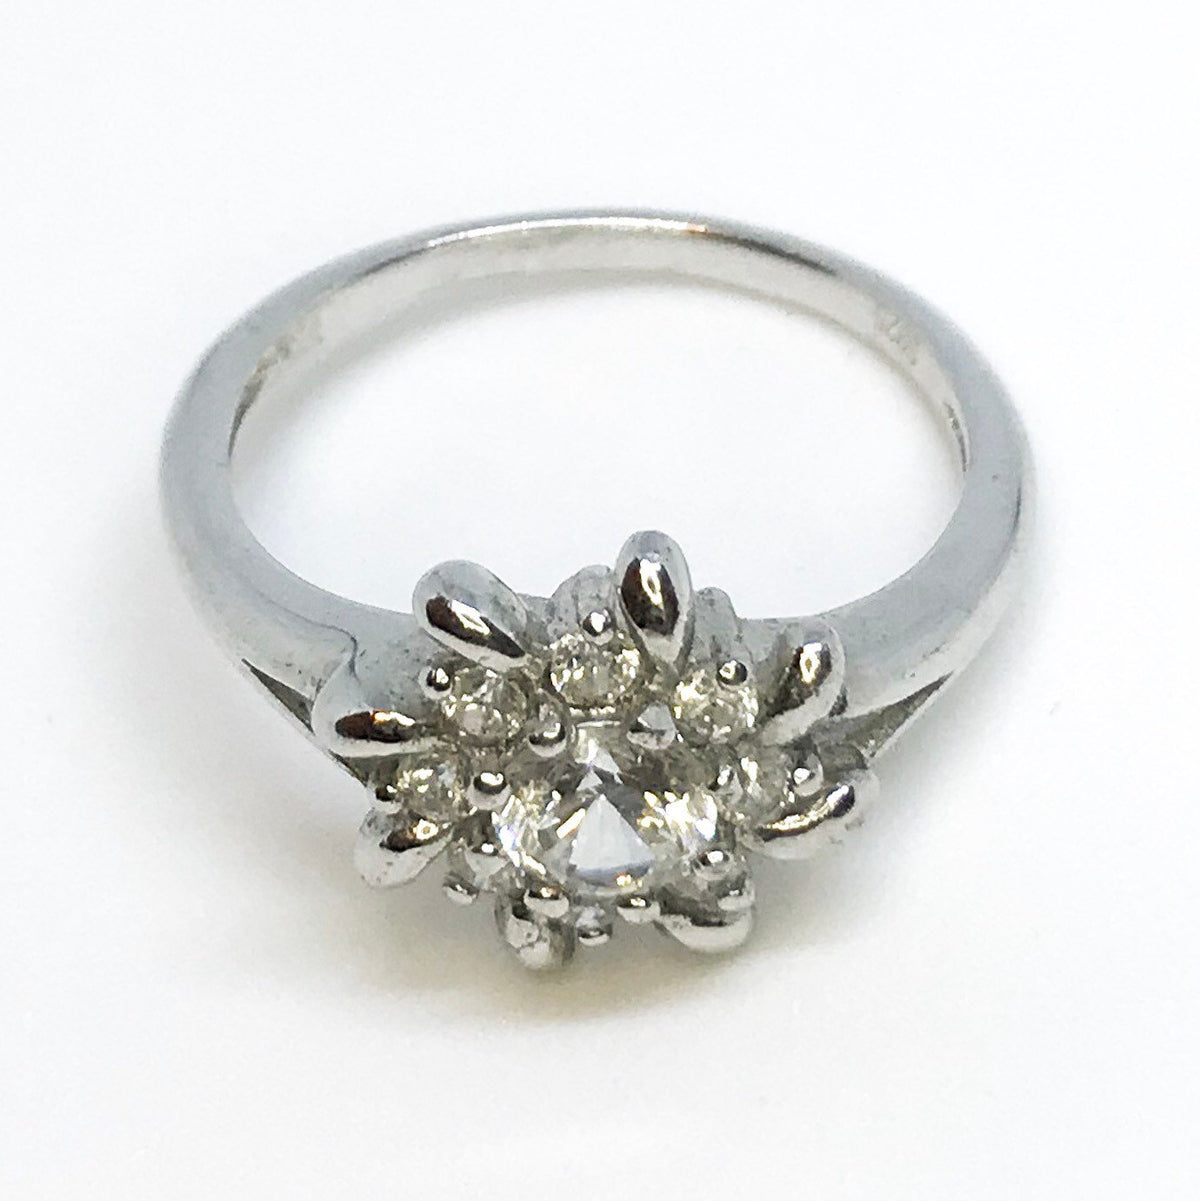 NEW 14K White Gold Layered on Sterling Silver Decorated Detailed Flower Ring